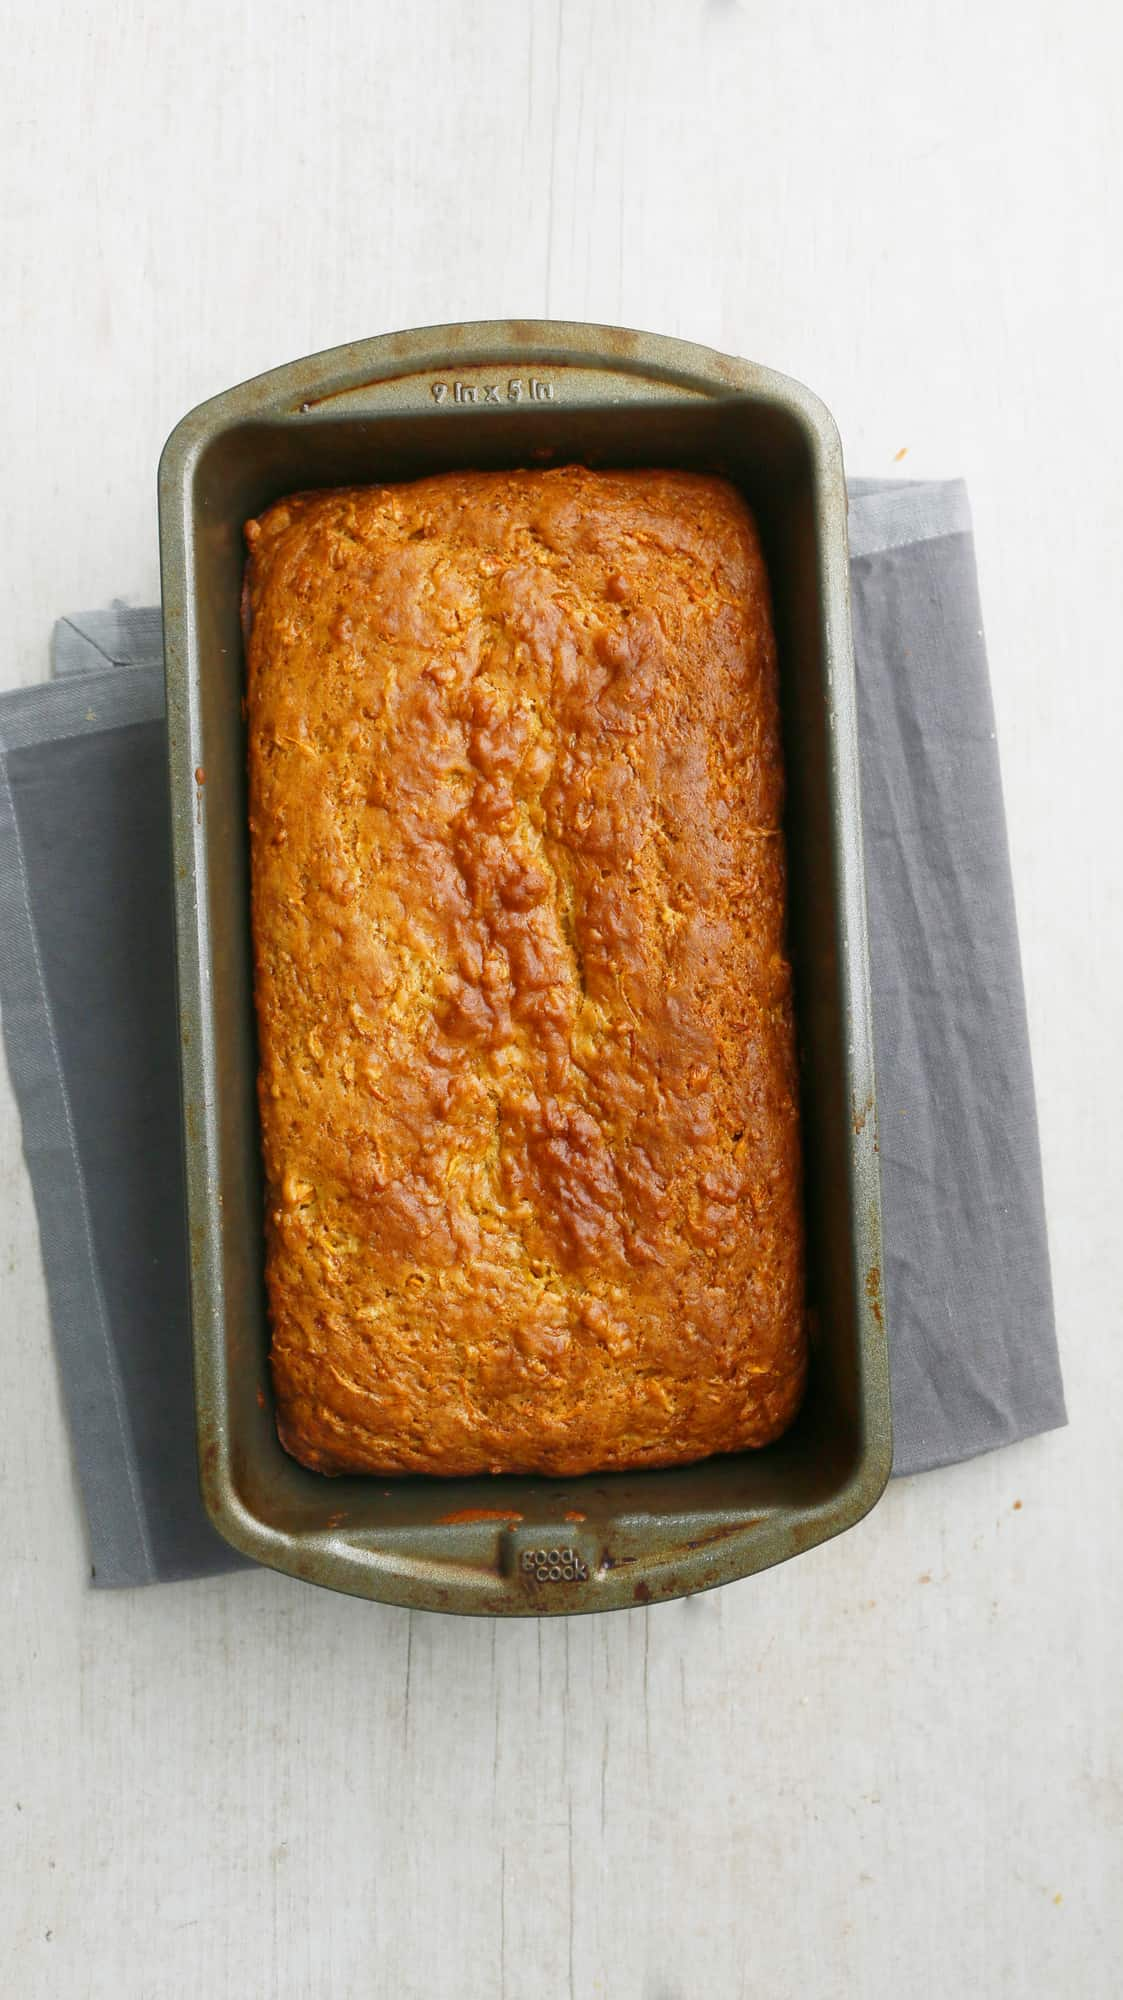 baked loaf of persimmon bread